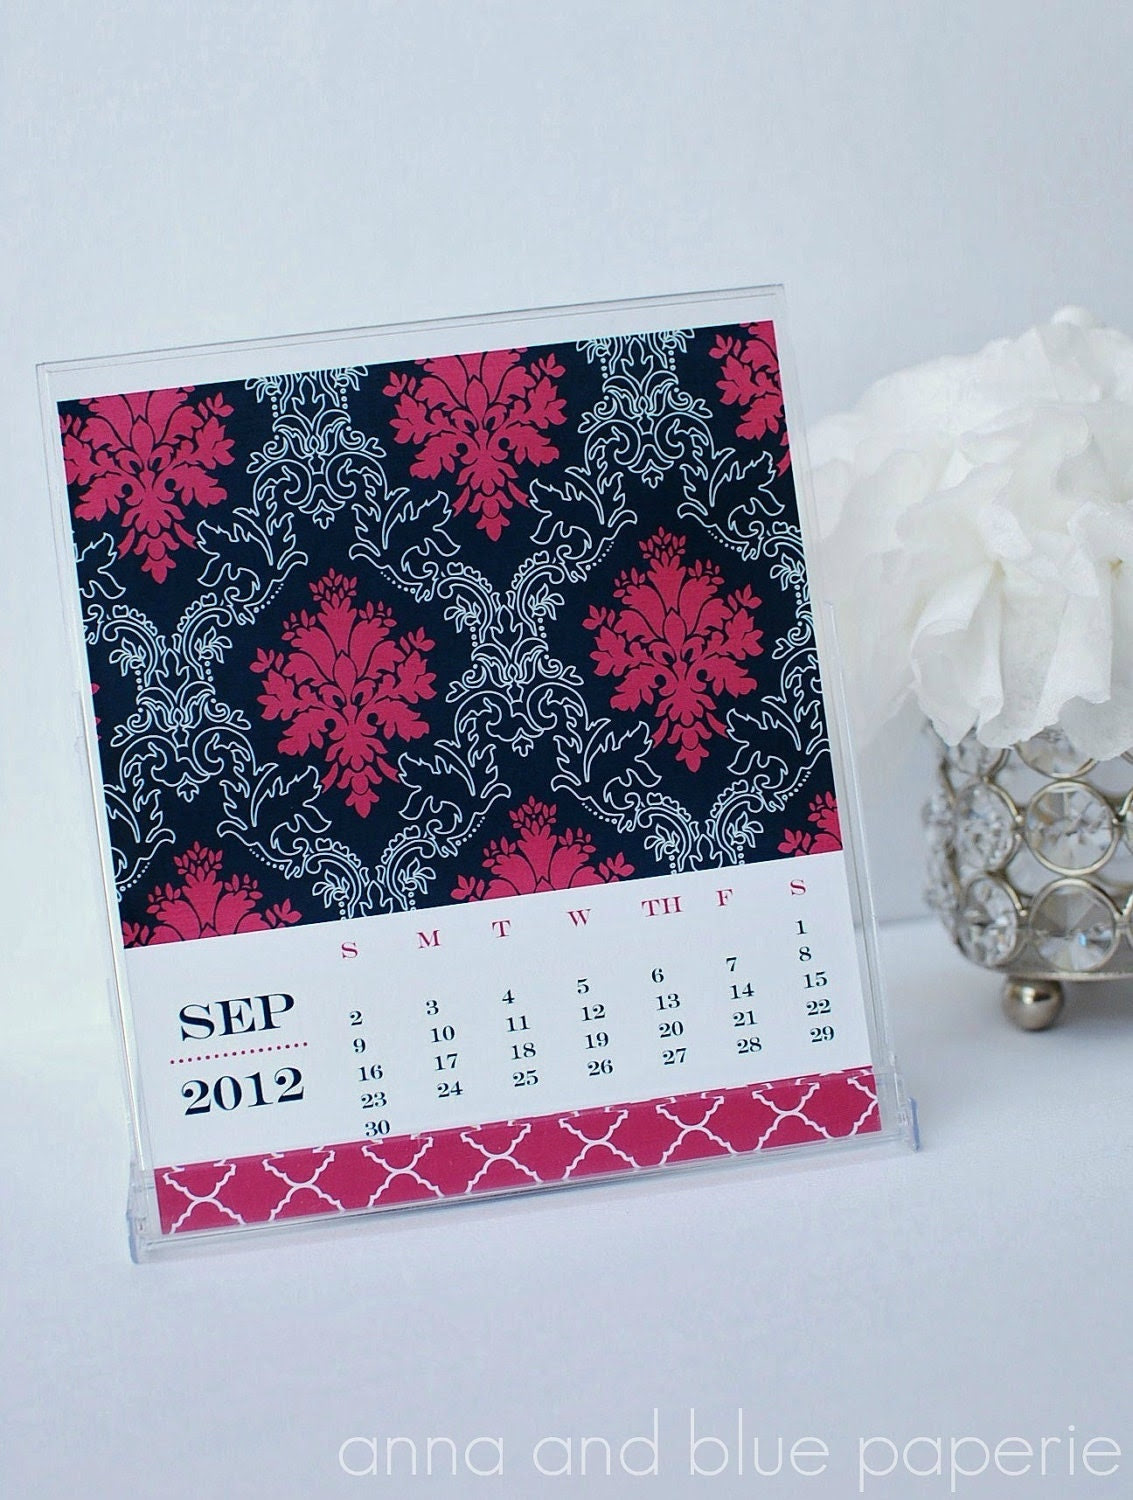 2012 Desk Calendar Turns into Note Cards  - Printable Desk Calendar - anna and blue paperie